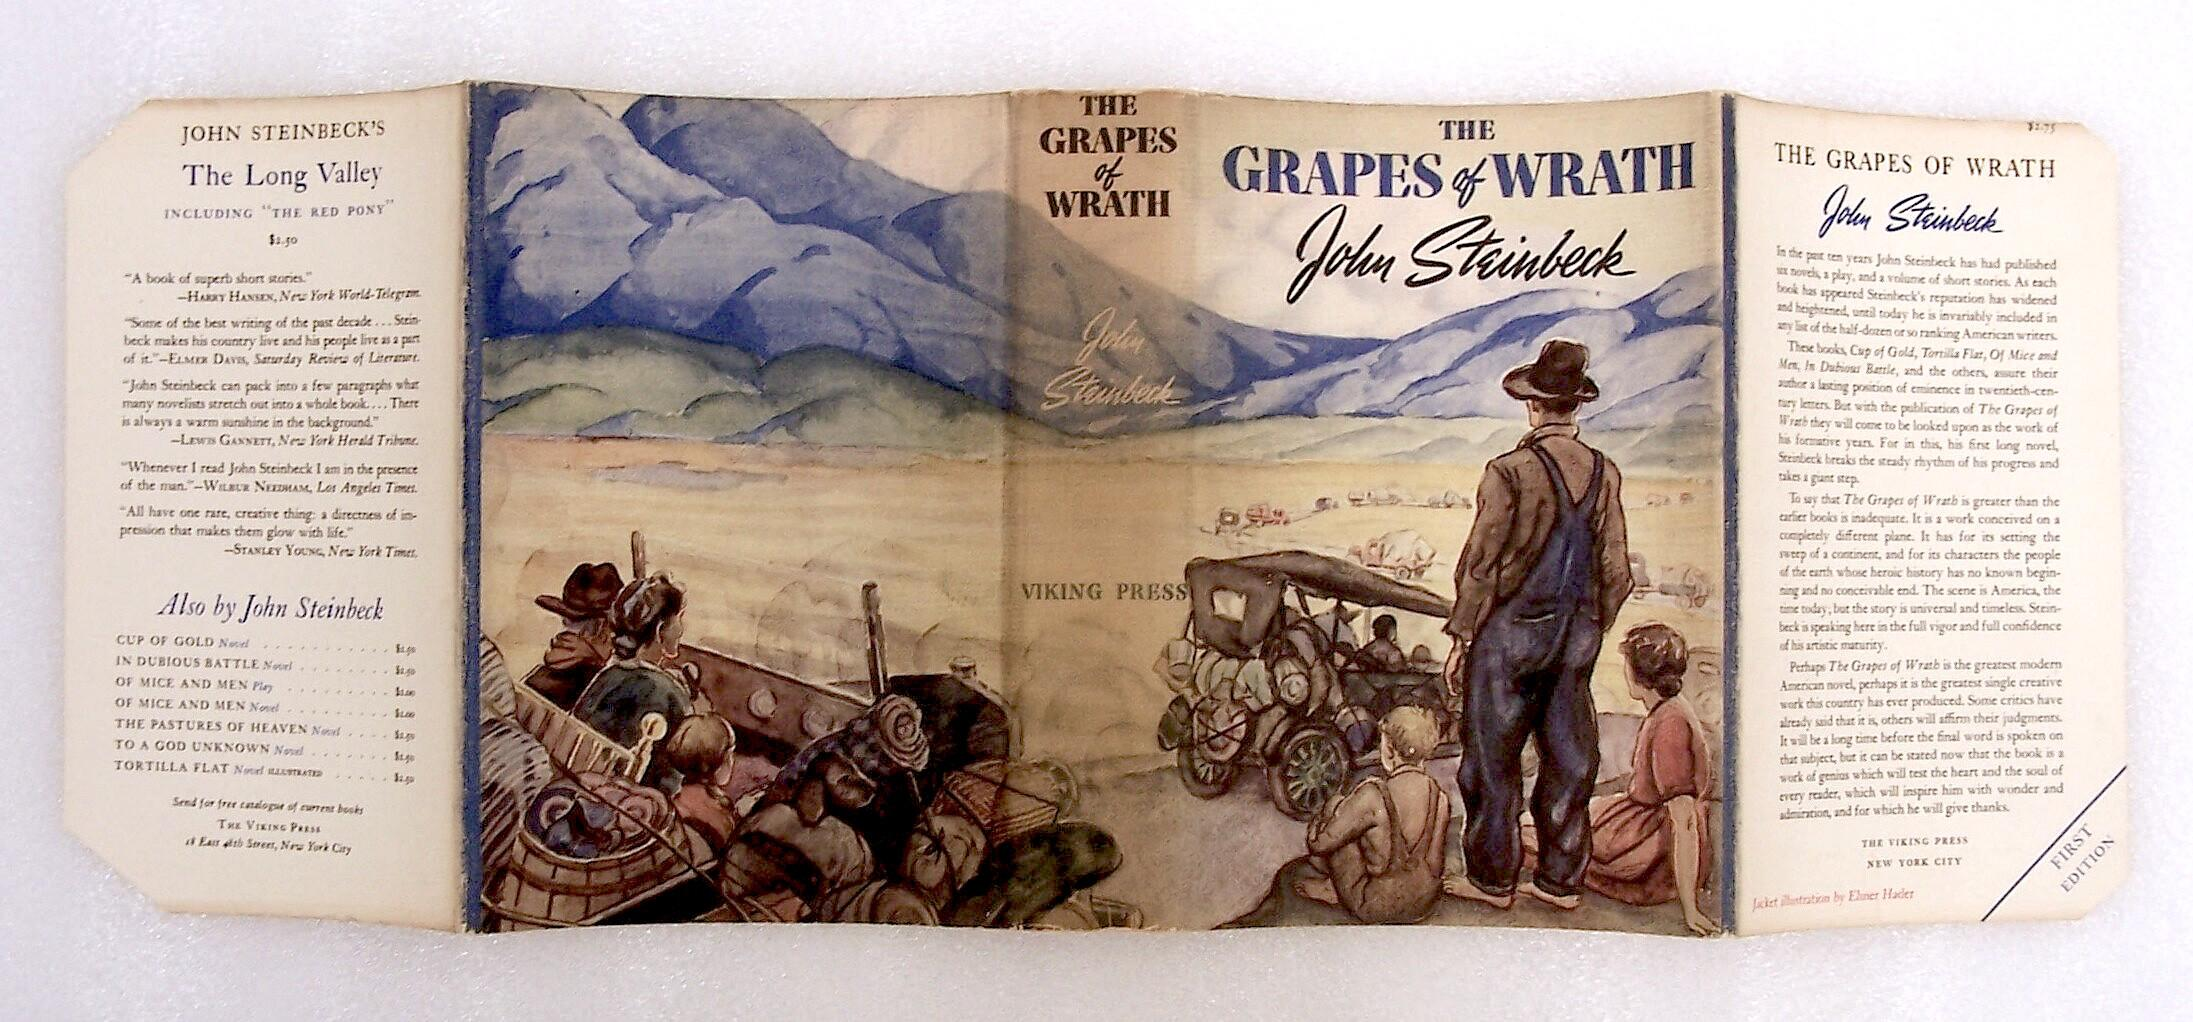 what does the title grapes of wrath mean